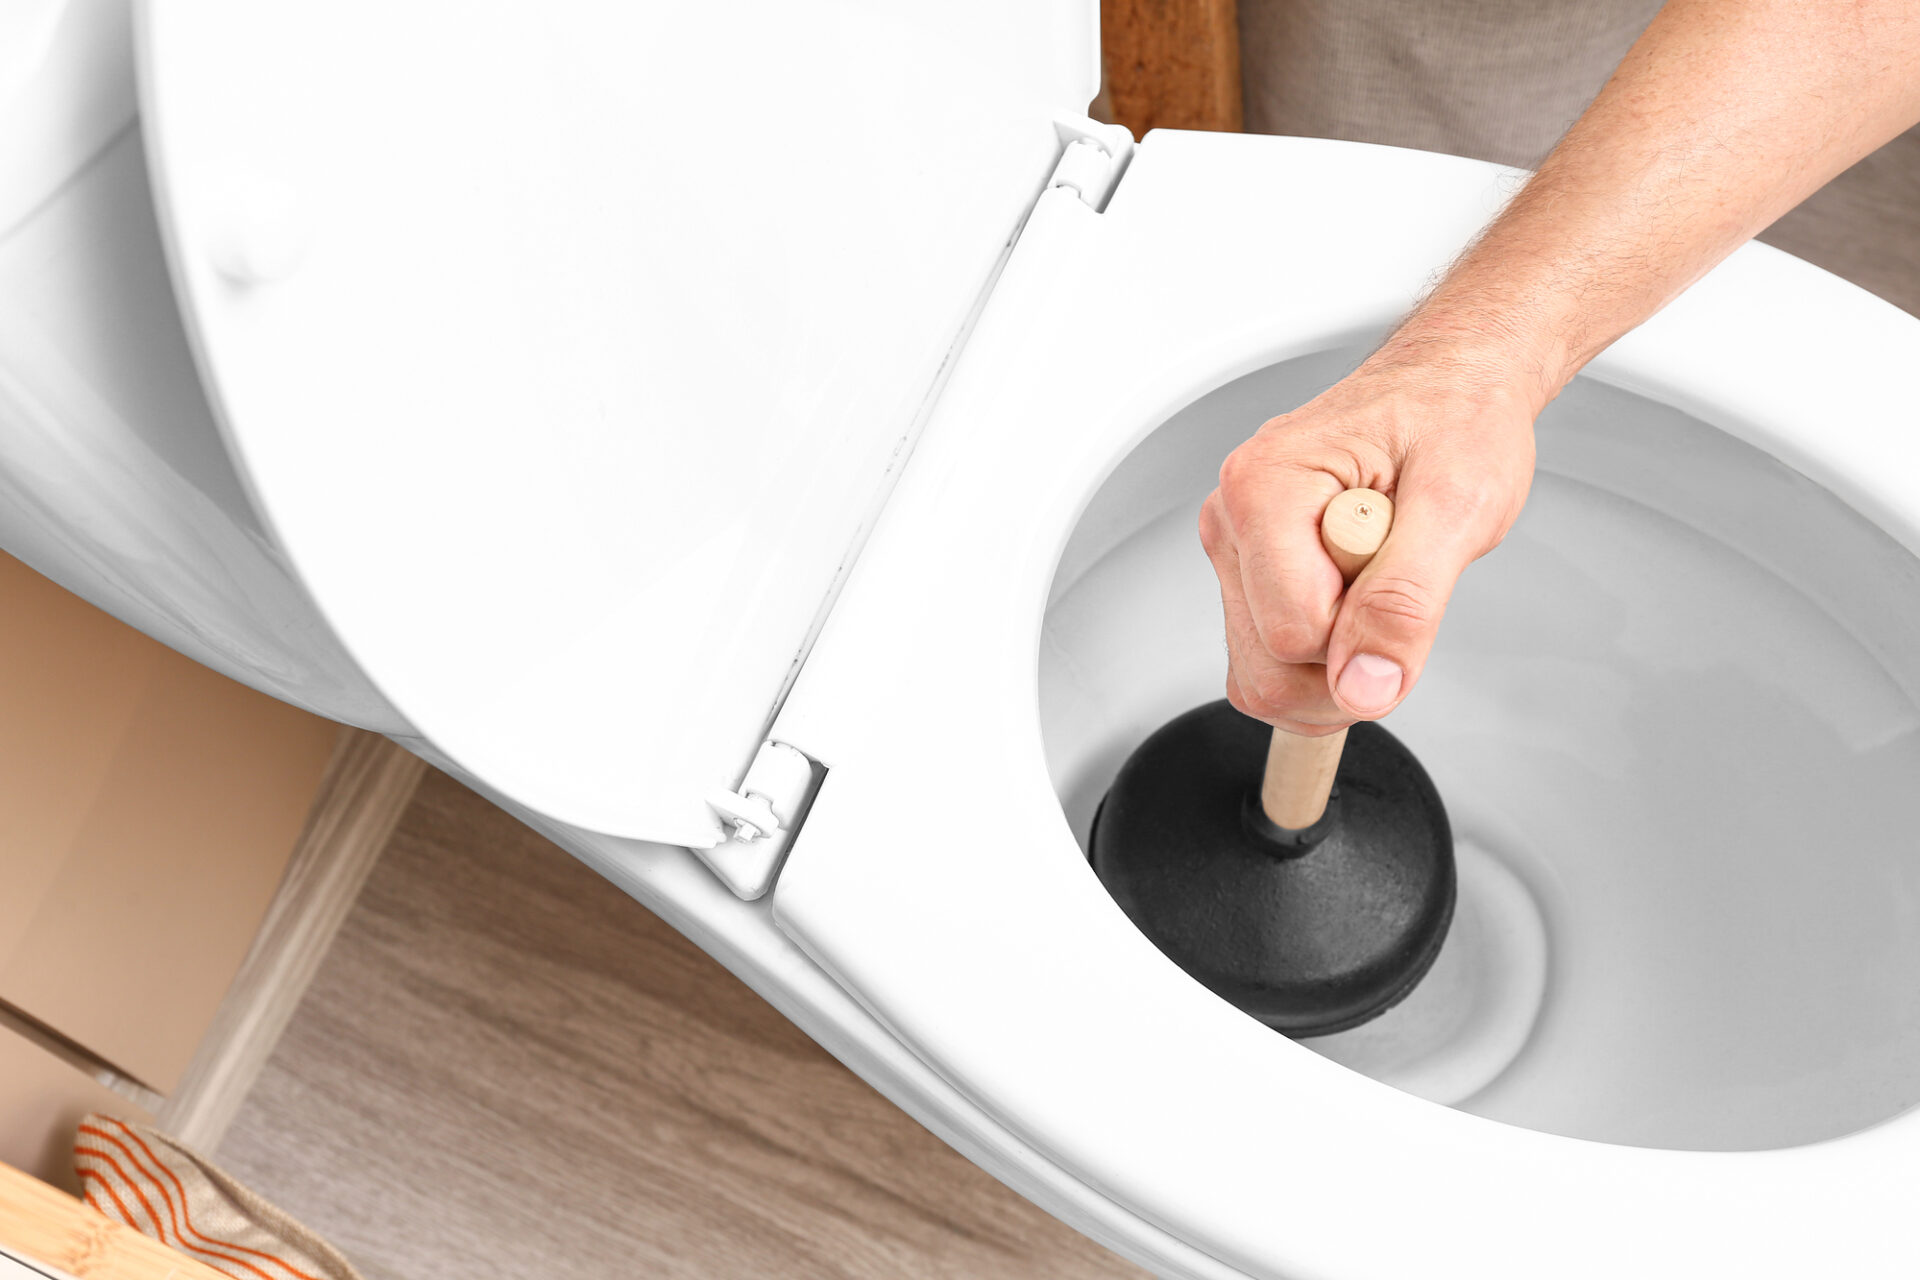 Man using plunger to unclog a toilet bowl